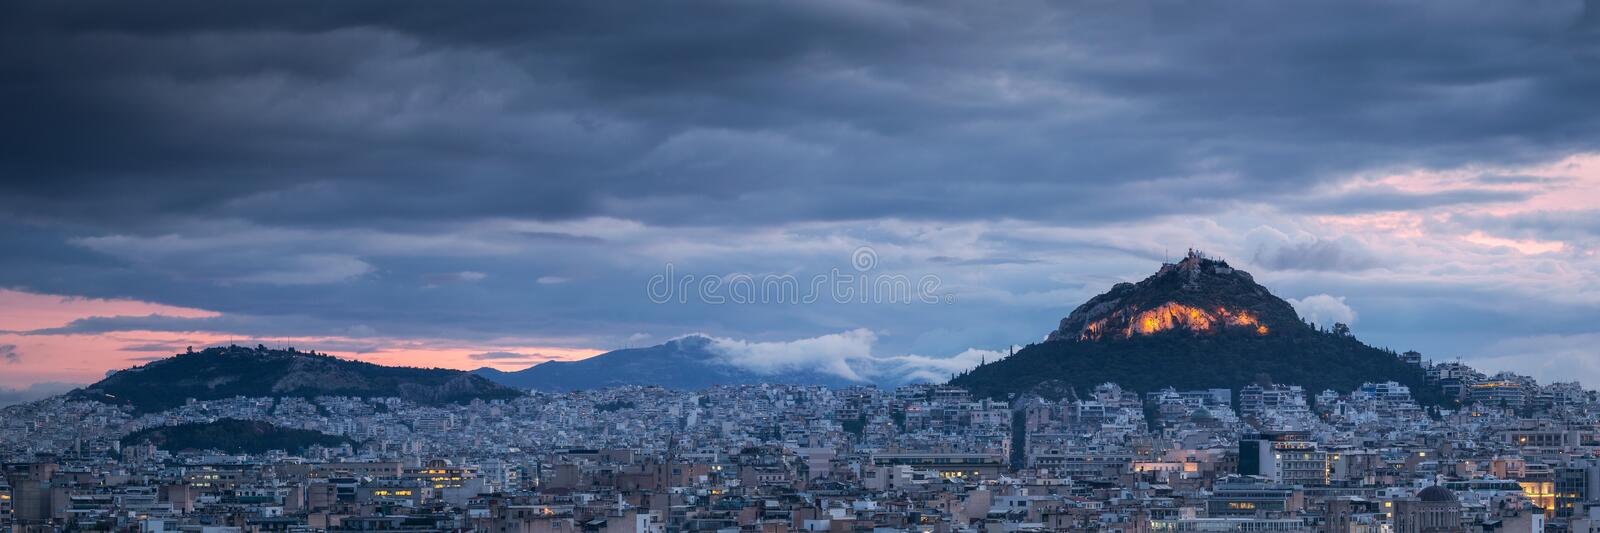 Lycabettus hill in Athens. View of Lycabettus hill from Areopagus hill in central Athens, Greece stock images